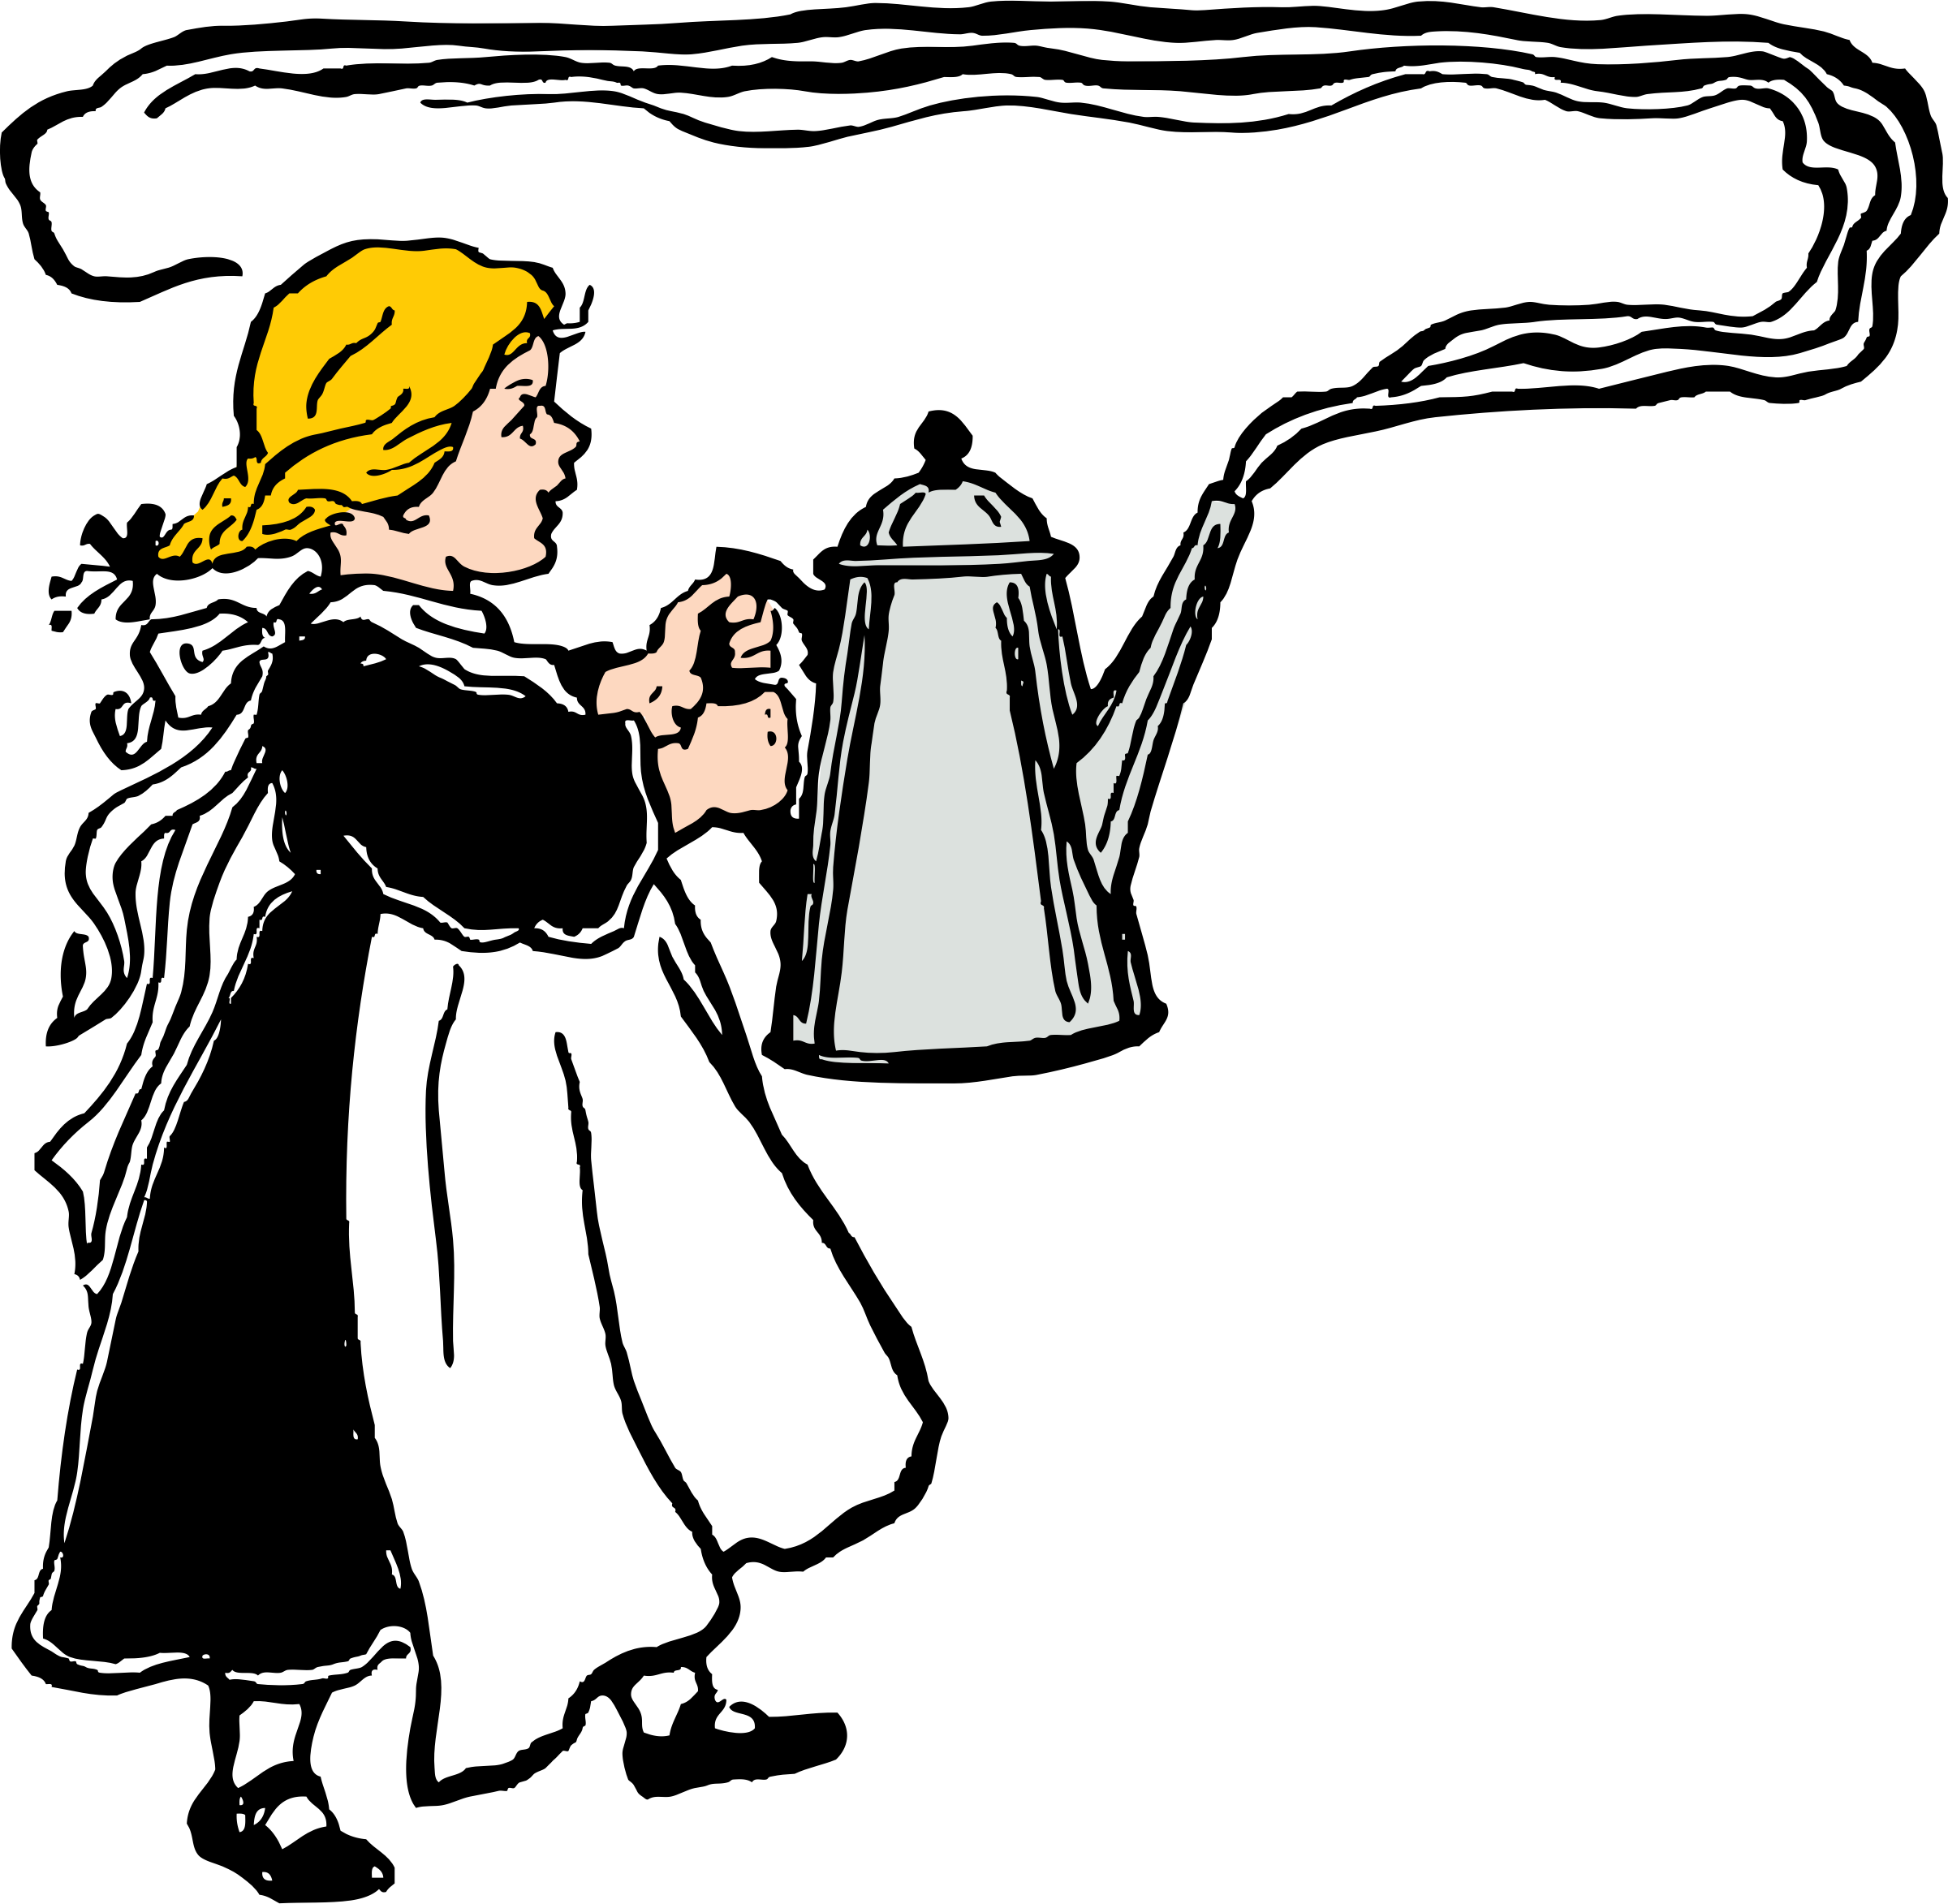 Dishwasher clipart transparent. Girl carries big steaming